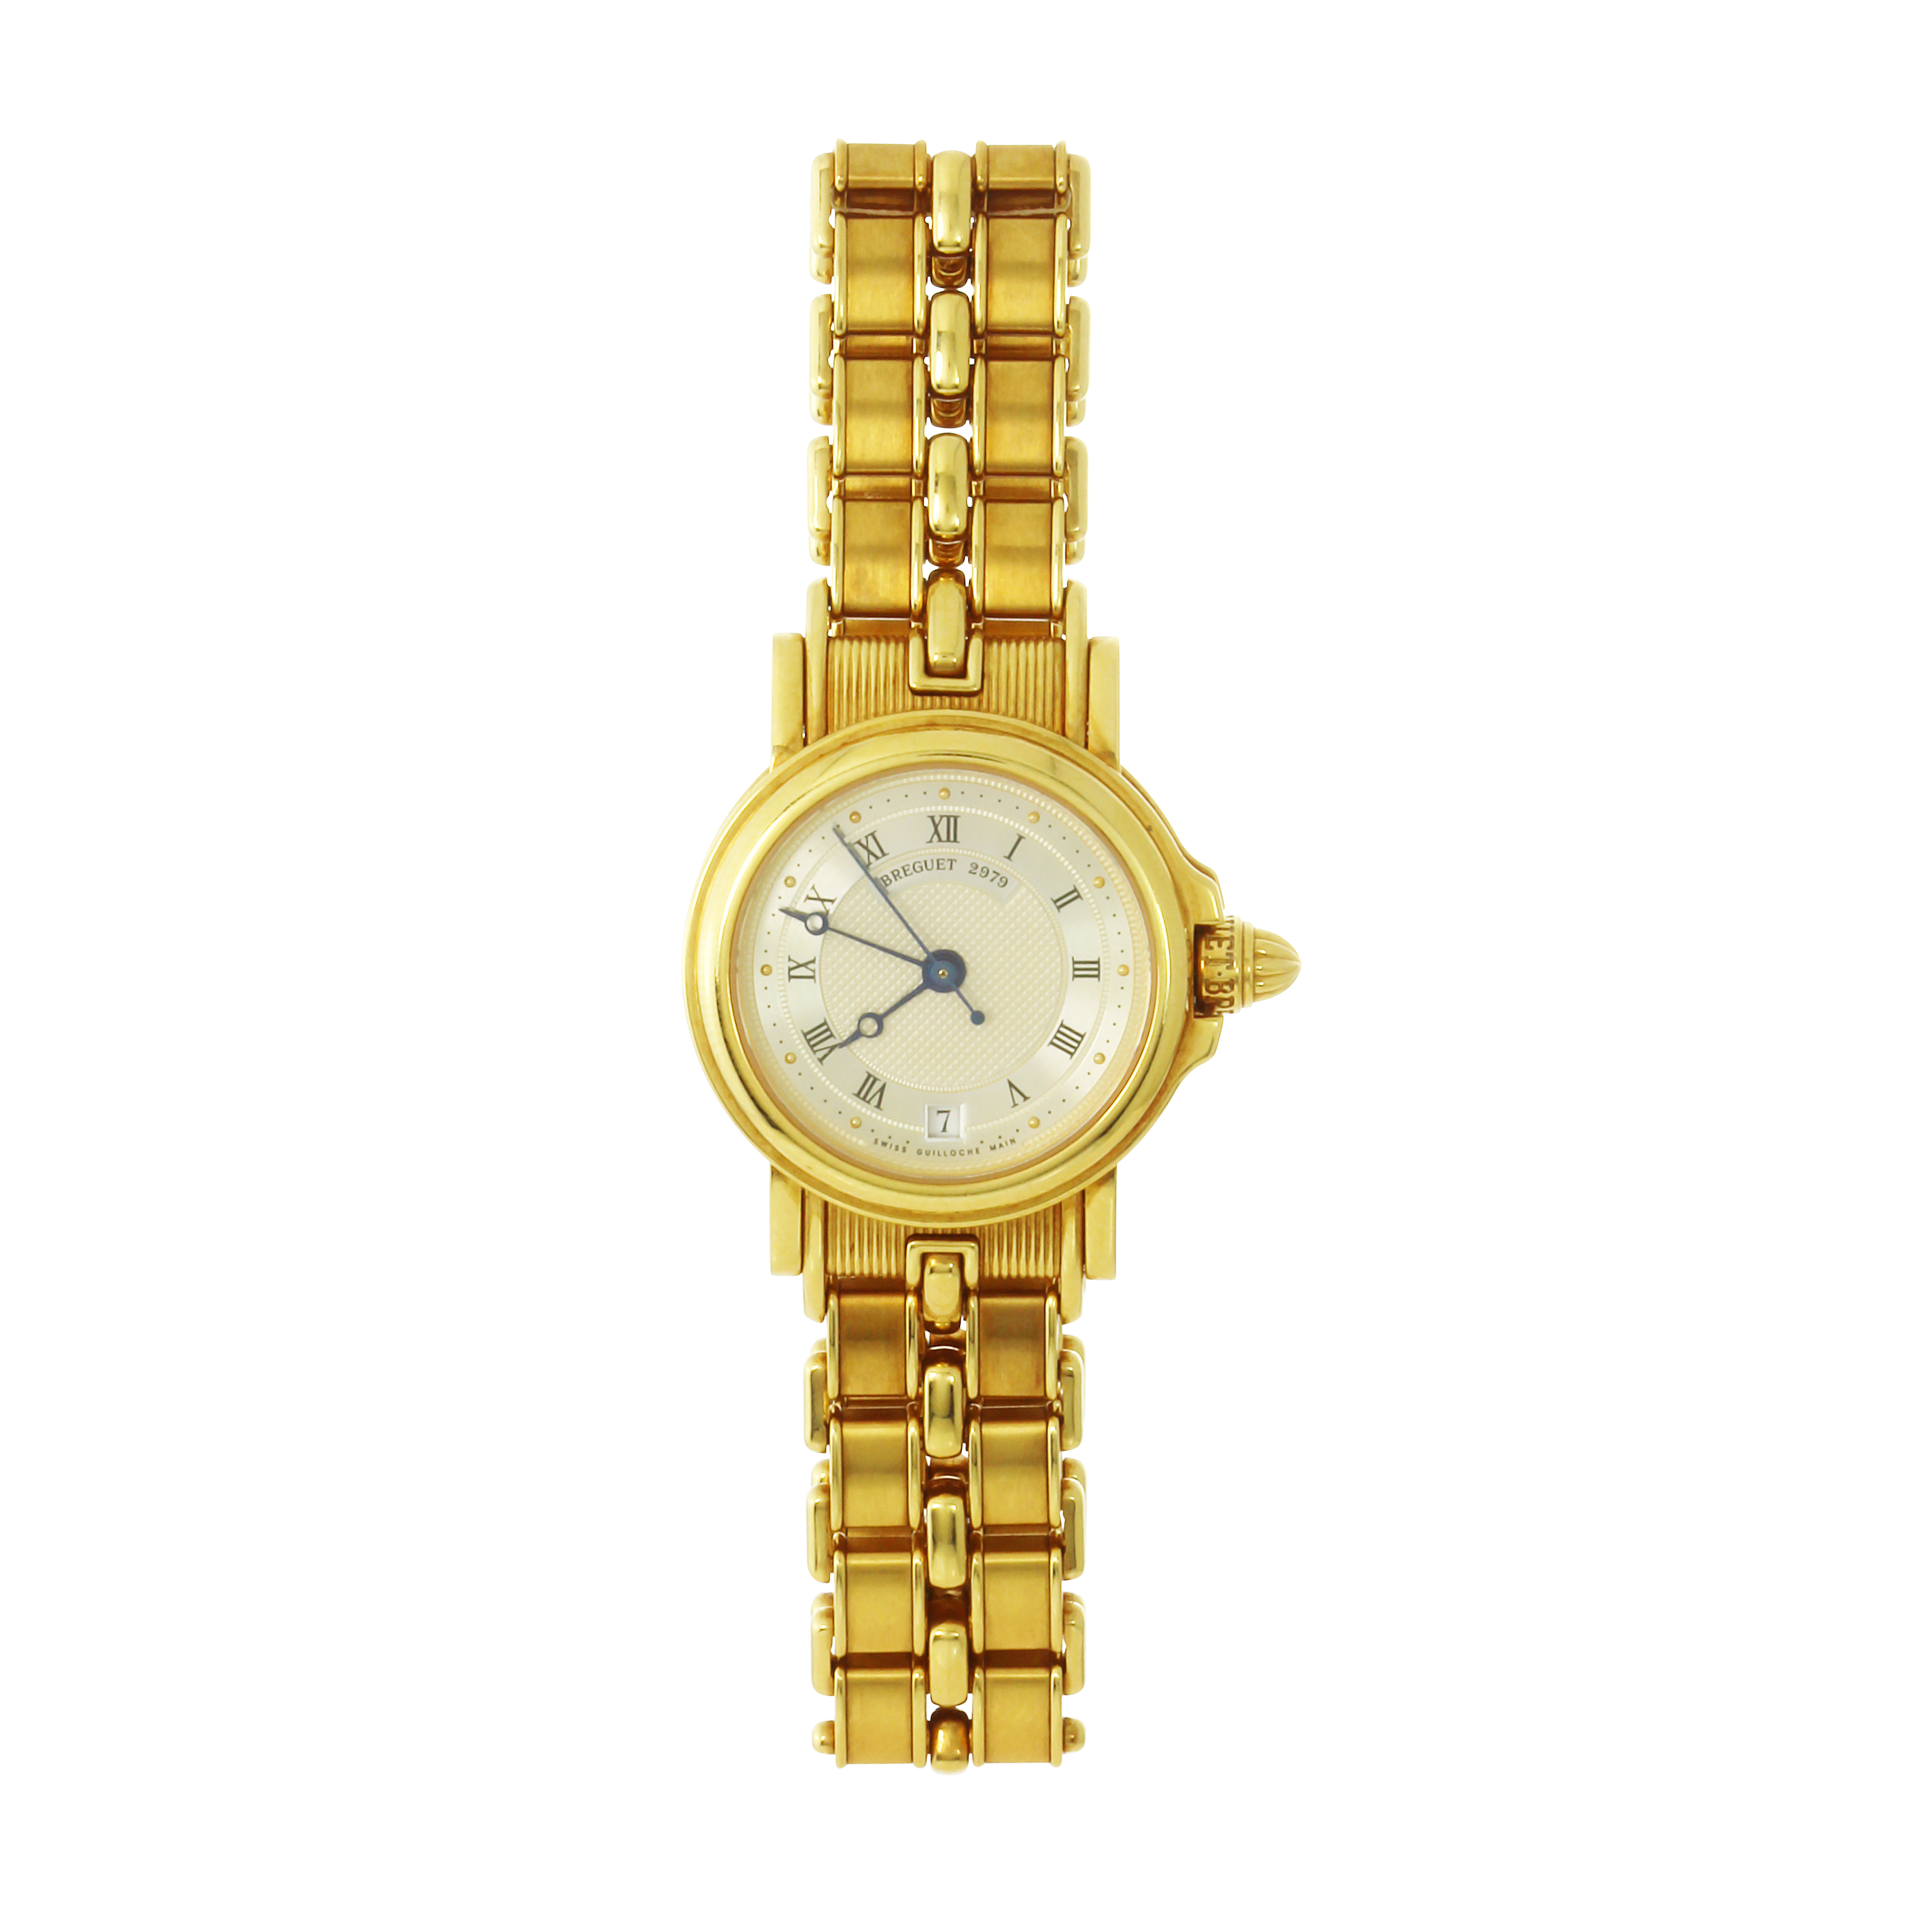 Los 353 - A MARINE 3400 LADIES GOLD WRISTWATCH BREGUET in 18ct yellow gold, the 26mm circular face with